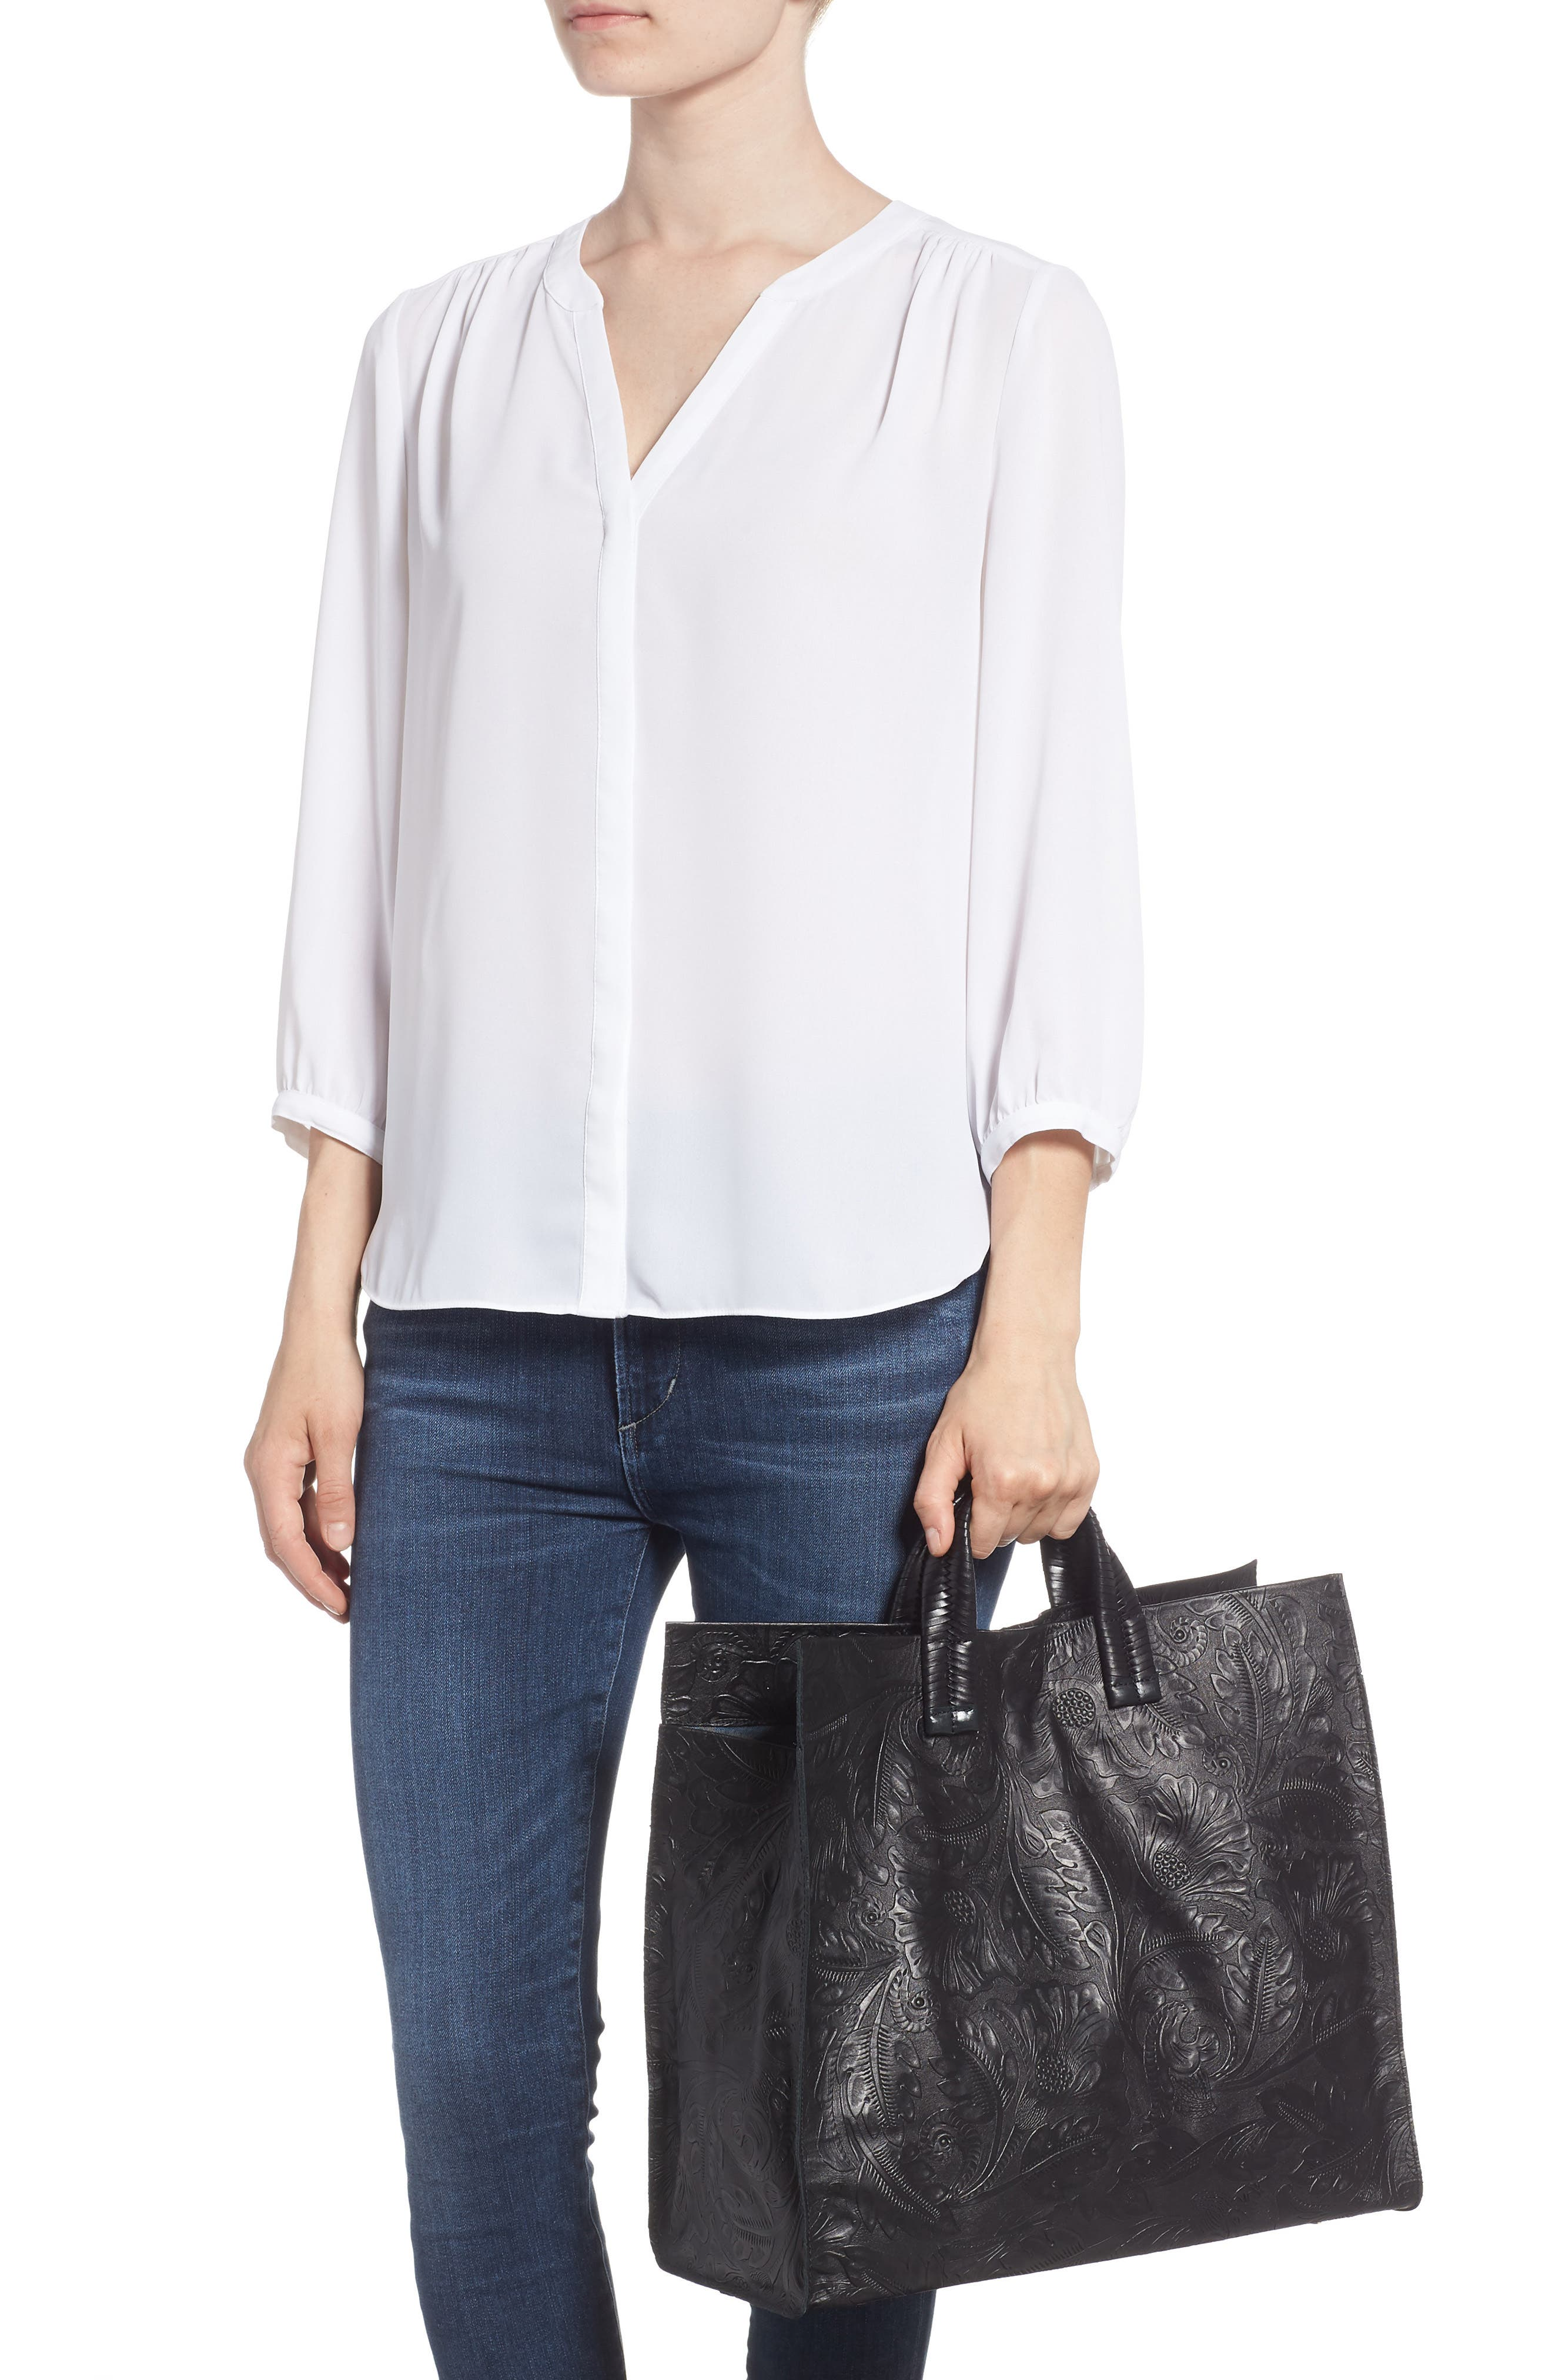 Simple Flower Embossed Leather Tote,                             Alternate thumbnail 2, color,                             001